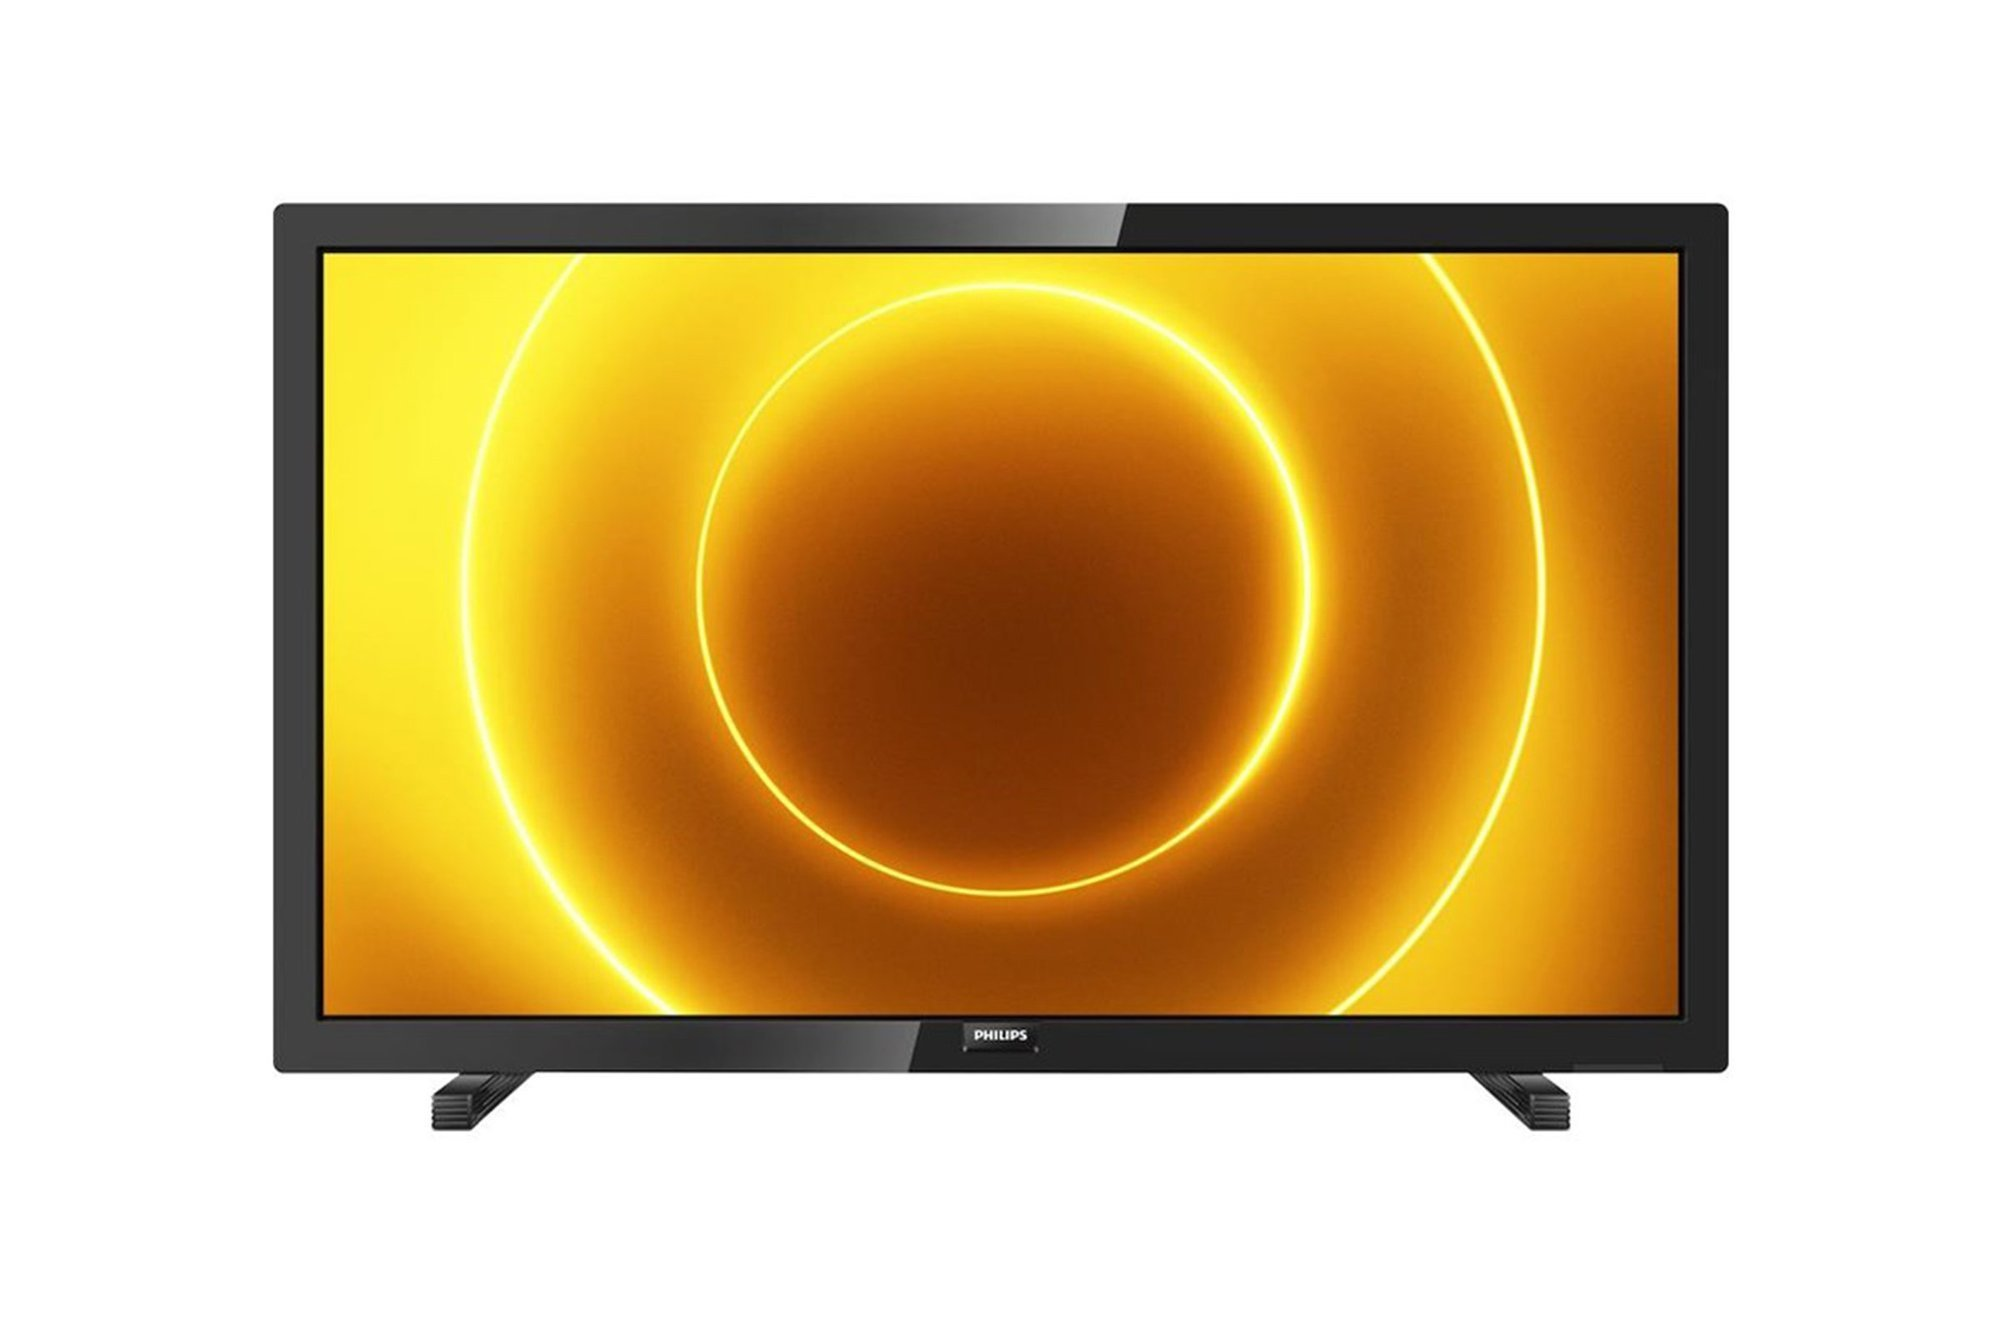 "LED TV Philips 24PFS5505/12 24"" Full HD"